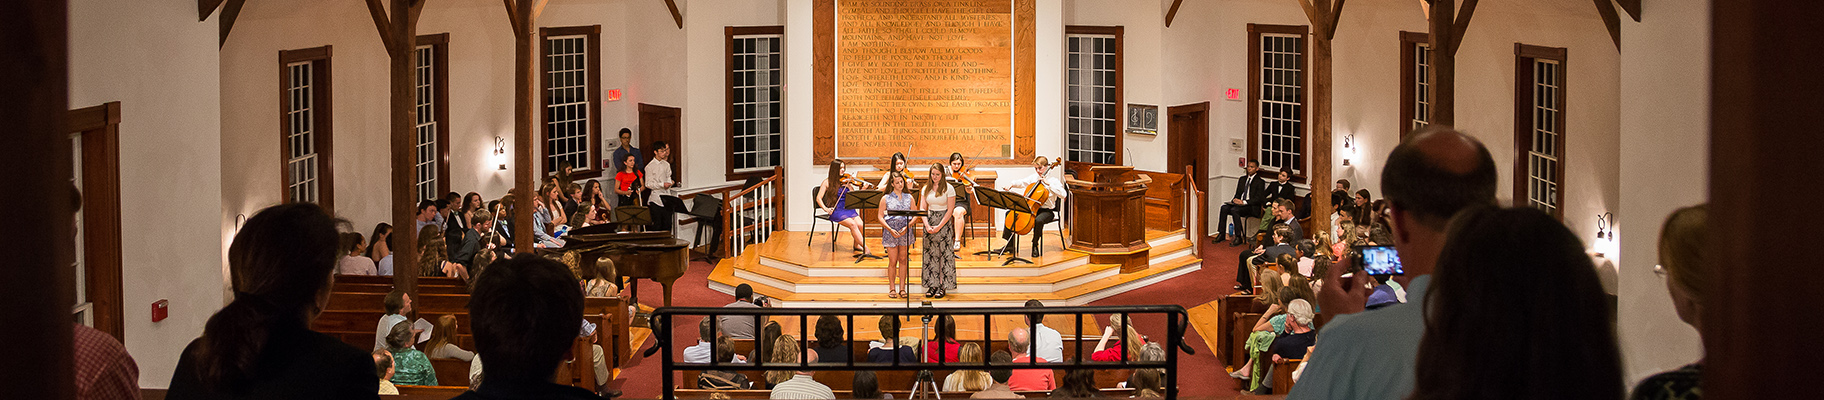 A performance in the Elizabeth B. Hall Chapel at Concord Academy